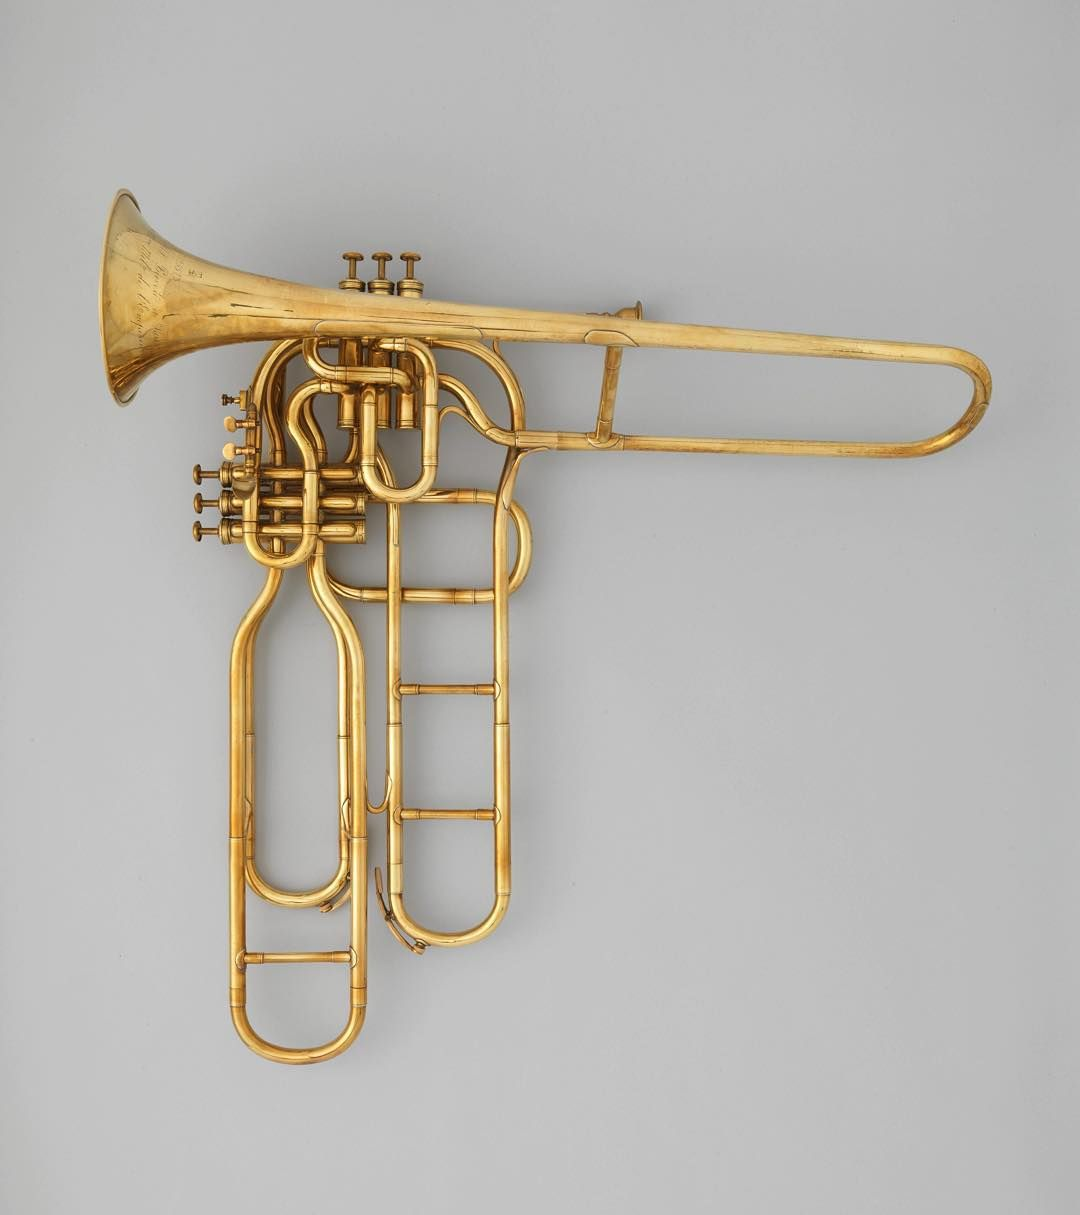 "metmuseumAdolphe Sax was born on this day in 1814. ""Celebrating Sax: Instruments and Innovation,"" on view through January 3, features twenty-six instruments made by three generations of the Sax family and marks the bicentenary of the birth of Adolphe Sax. Adolphe (Antoine Joseph) Sax (Belgian, 1814–1894). Tenor valve trombone, ca. 1863. #metmuseum #AdolpheSax #MetMusic"